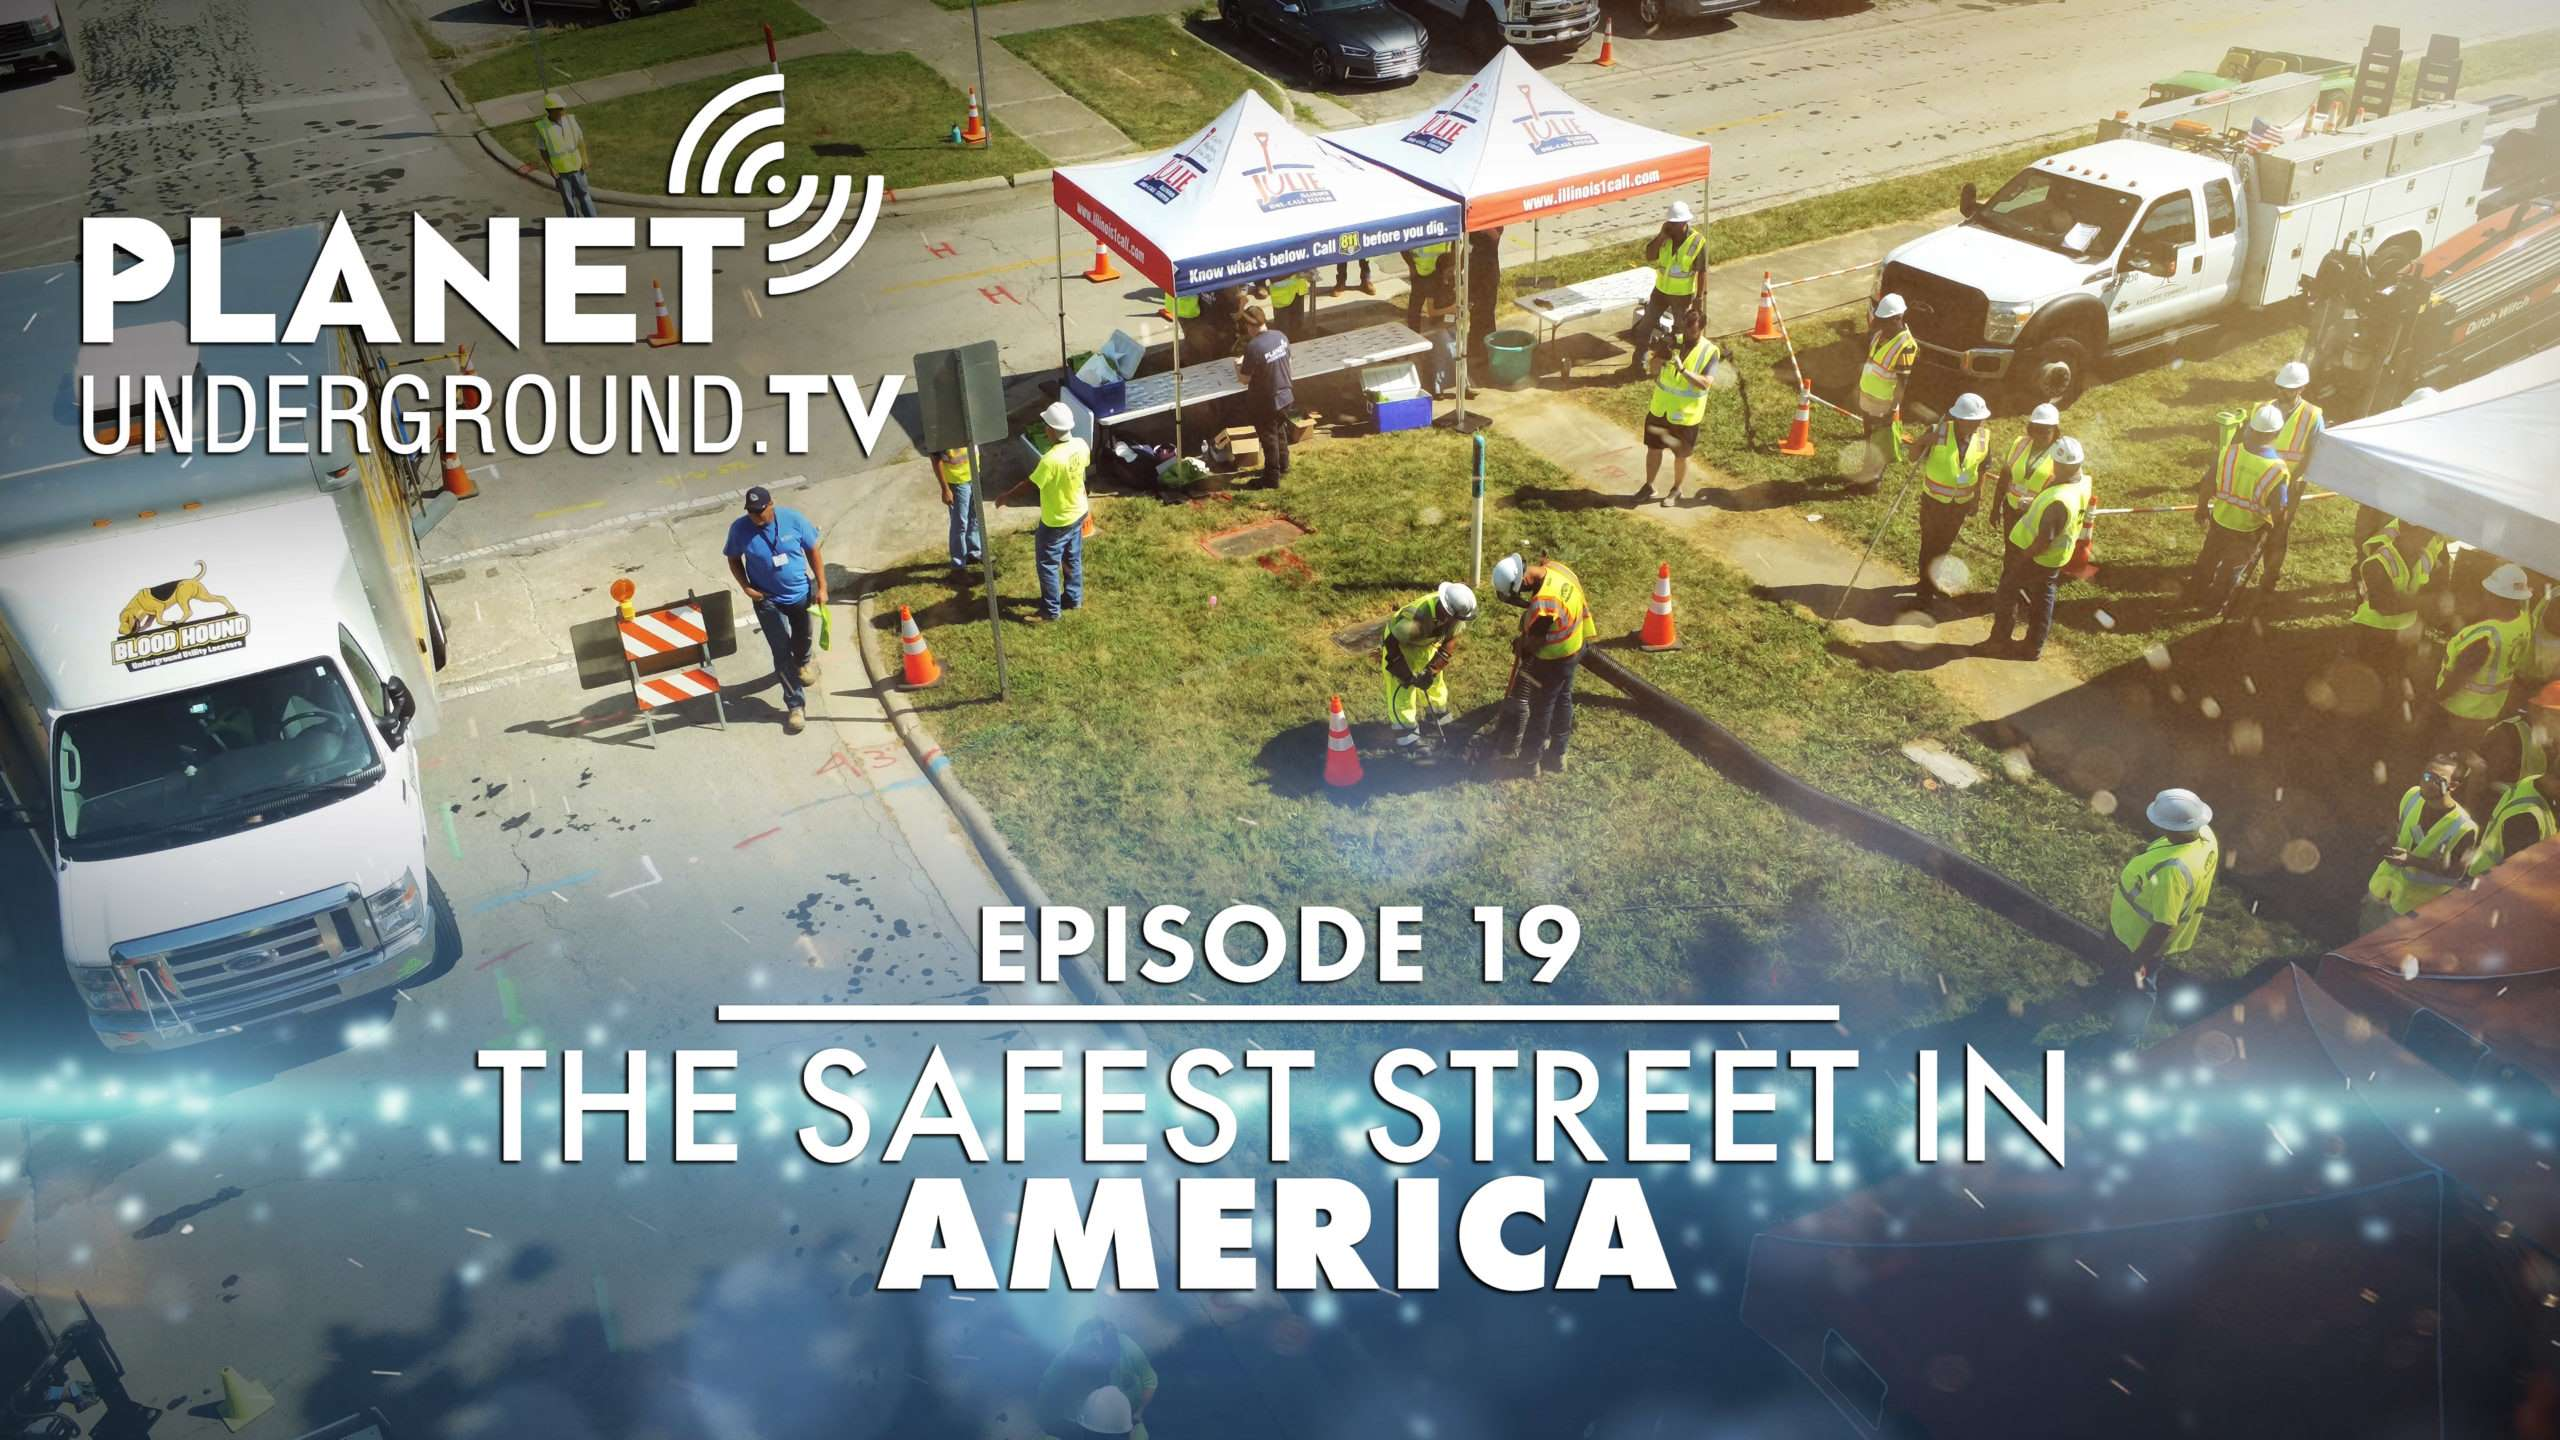 Episode 19: The Safest Street in America